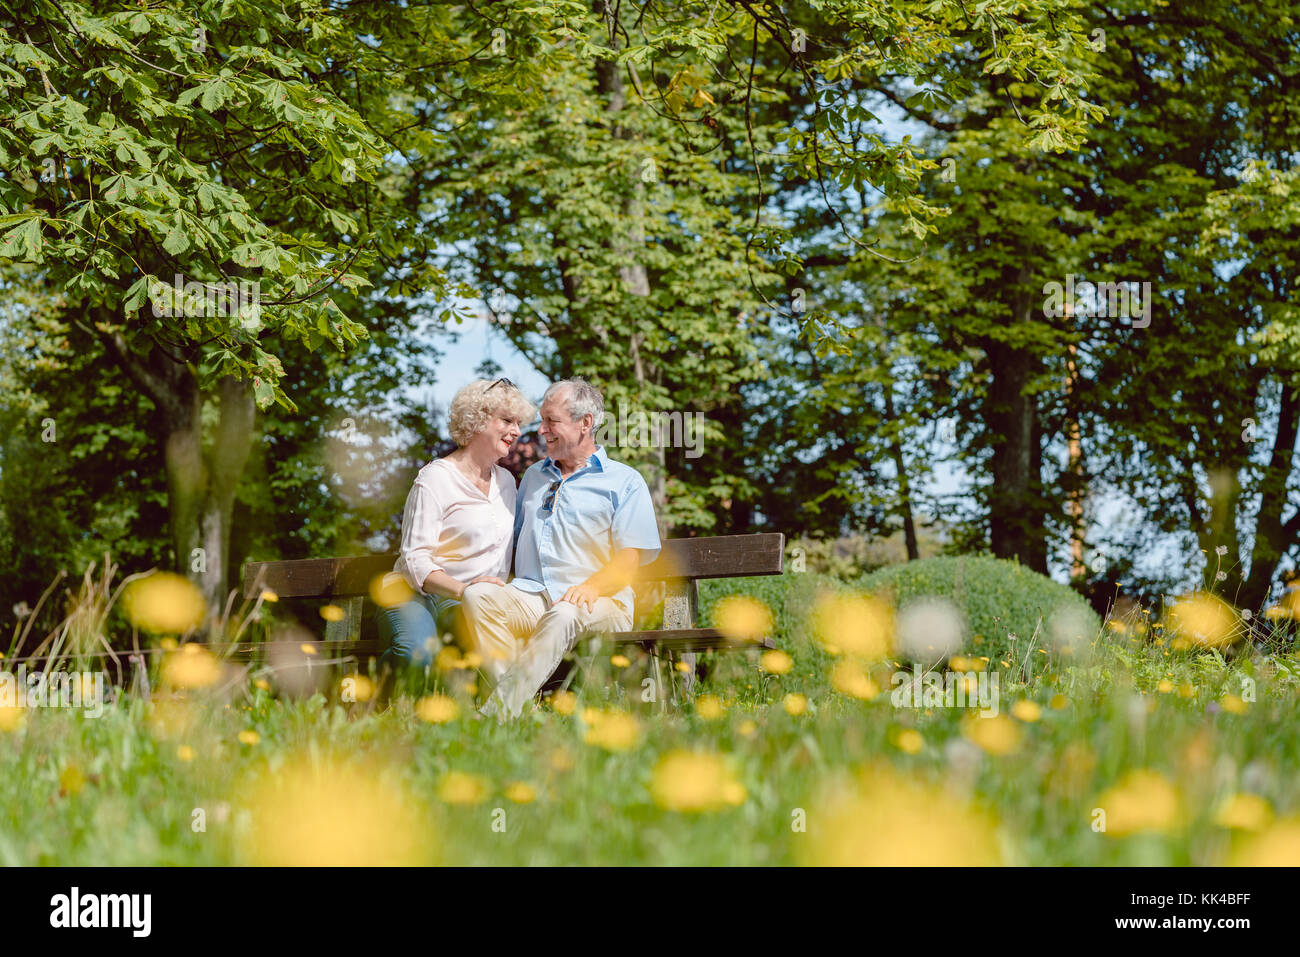 Romantic senior couple in love dating en plein air dans un cadre idyllique par Photo Stock